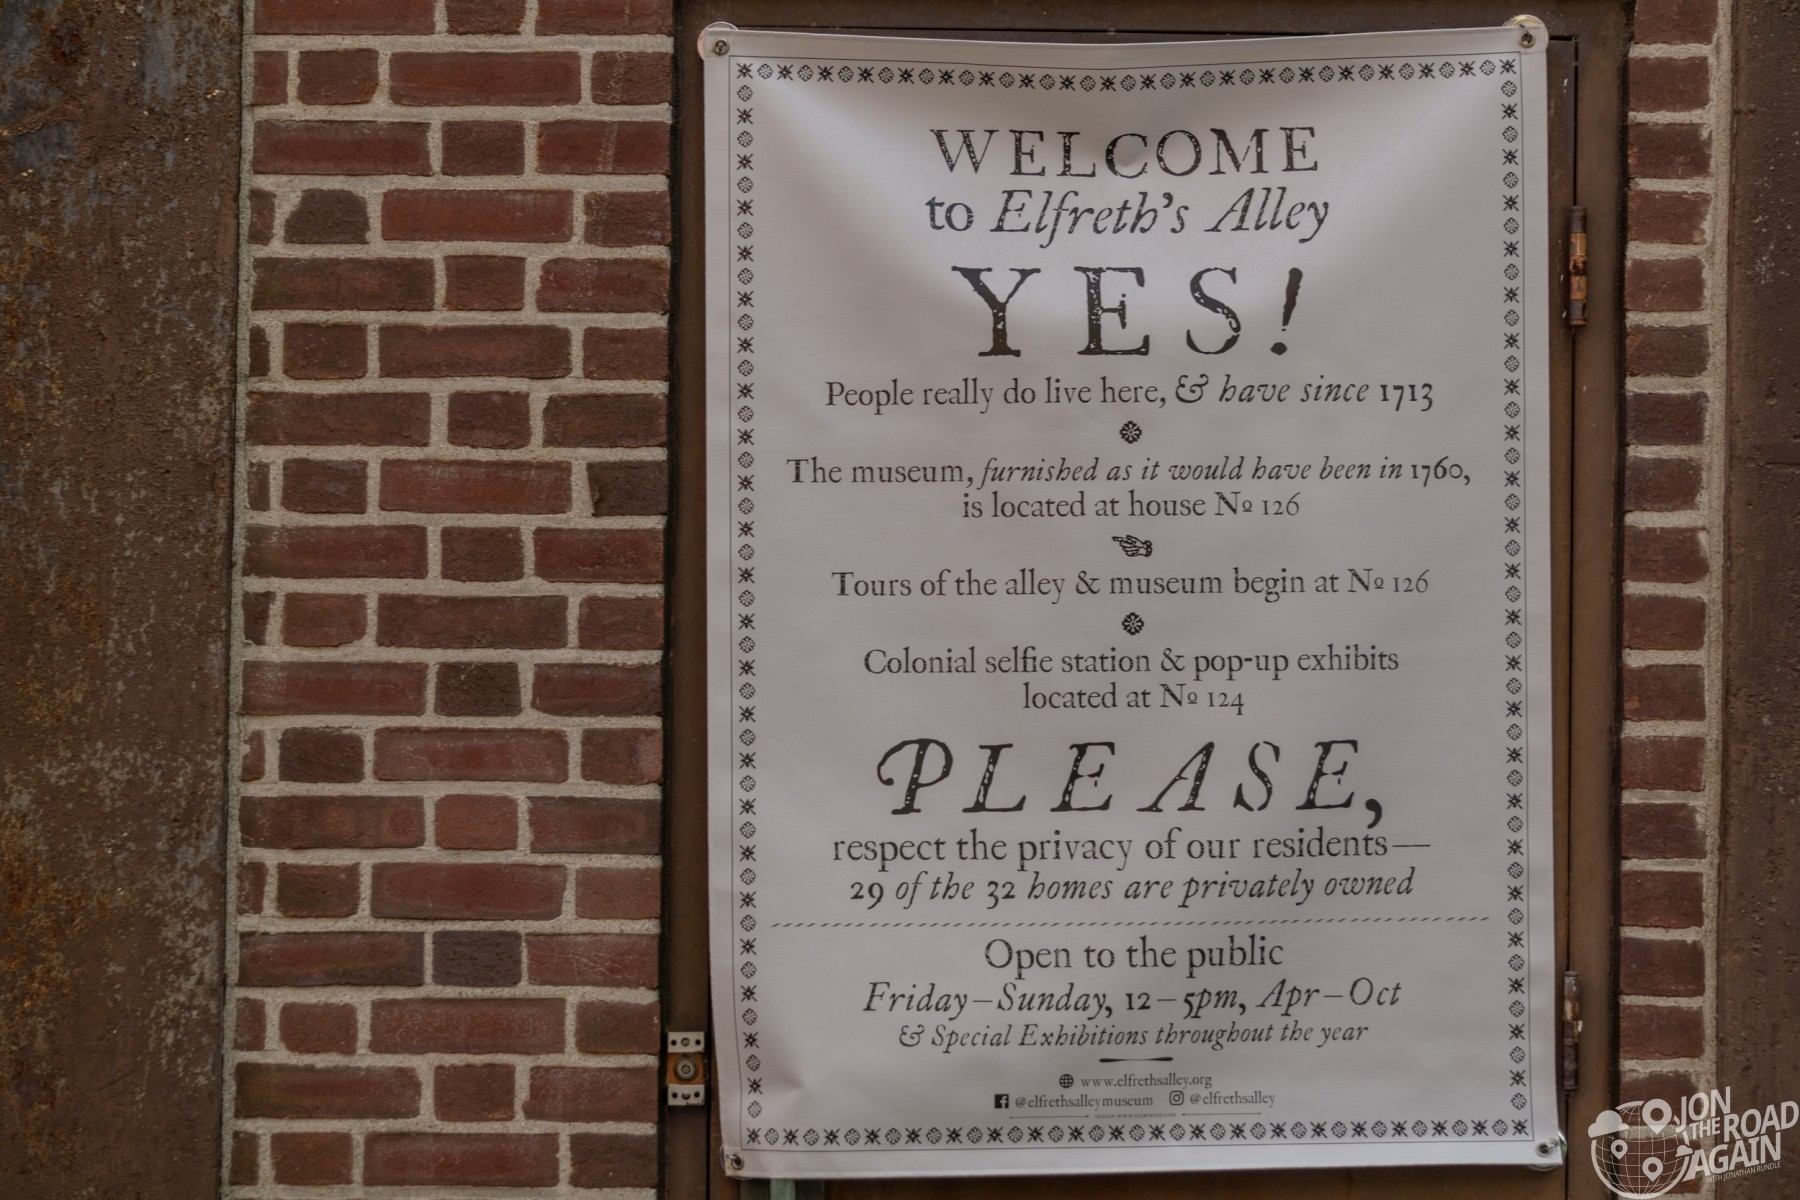 Elfreth's Alley Welcome sign